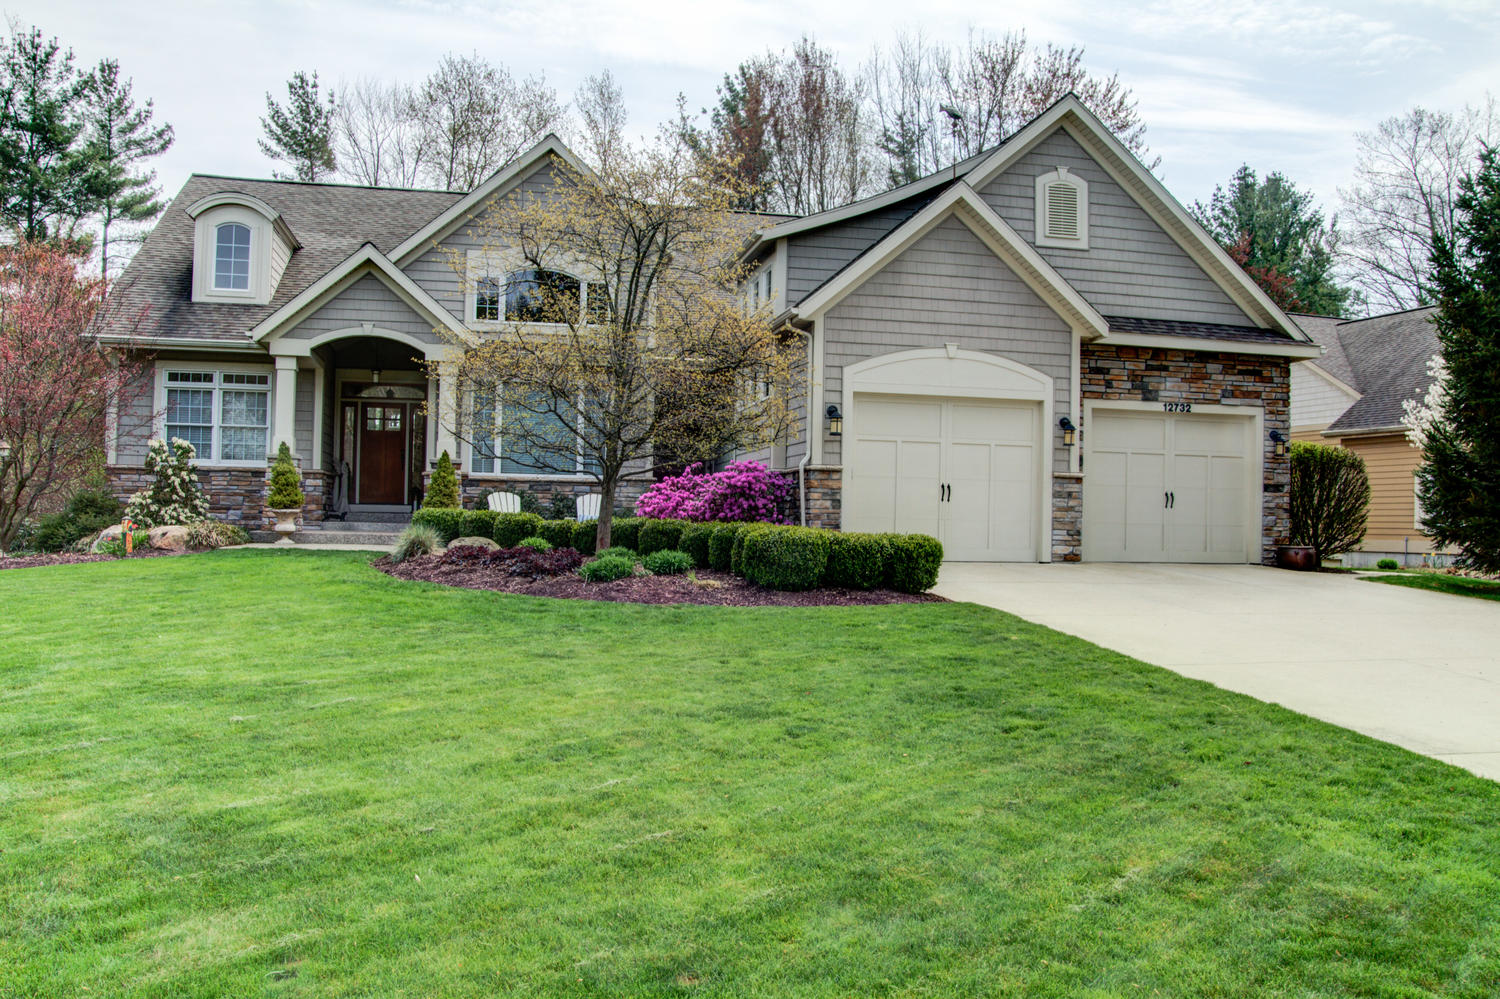 Single Family Home for Sale at Intriguing Elegance on the 9th Fairway 12732 Sanctuary Place Grand Haven, Michigan 49417 United States